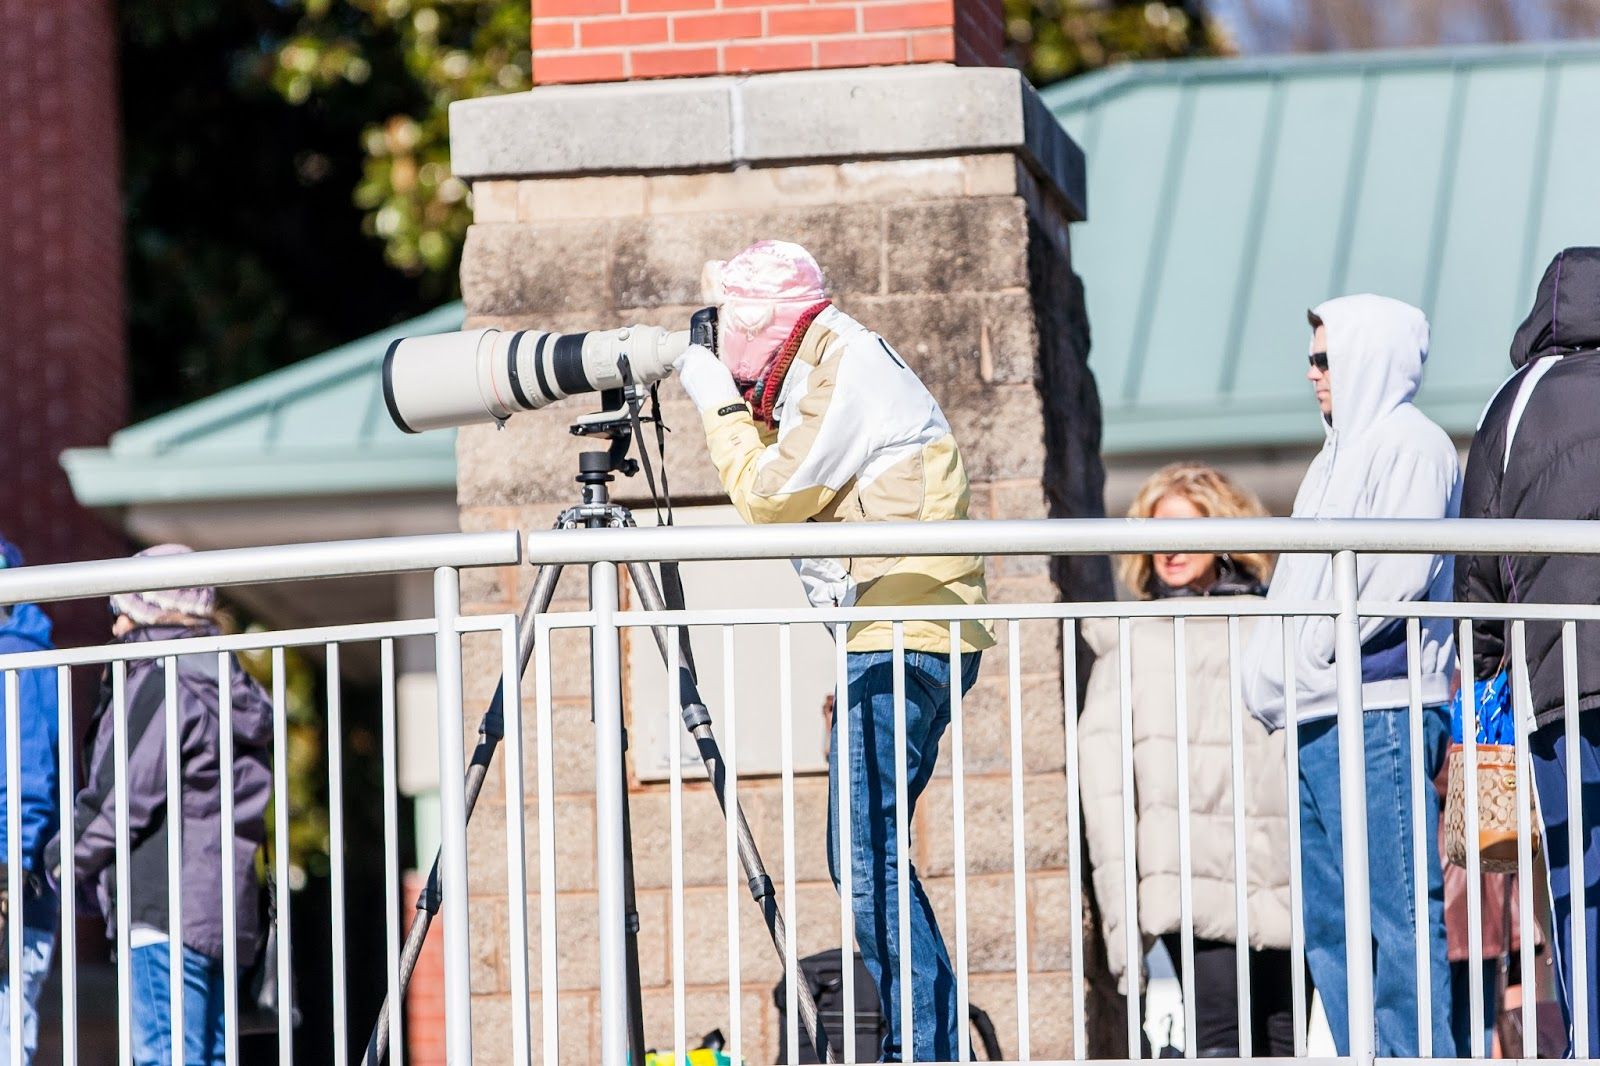 Lisa Mueller photographing with 600mm lens